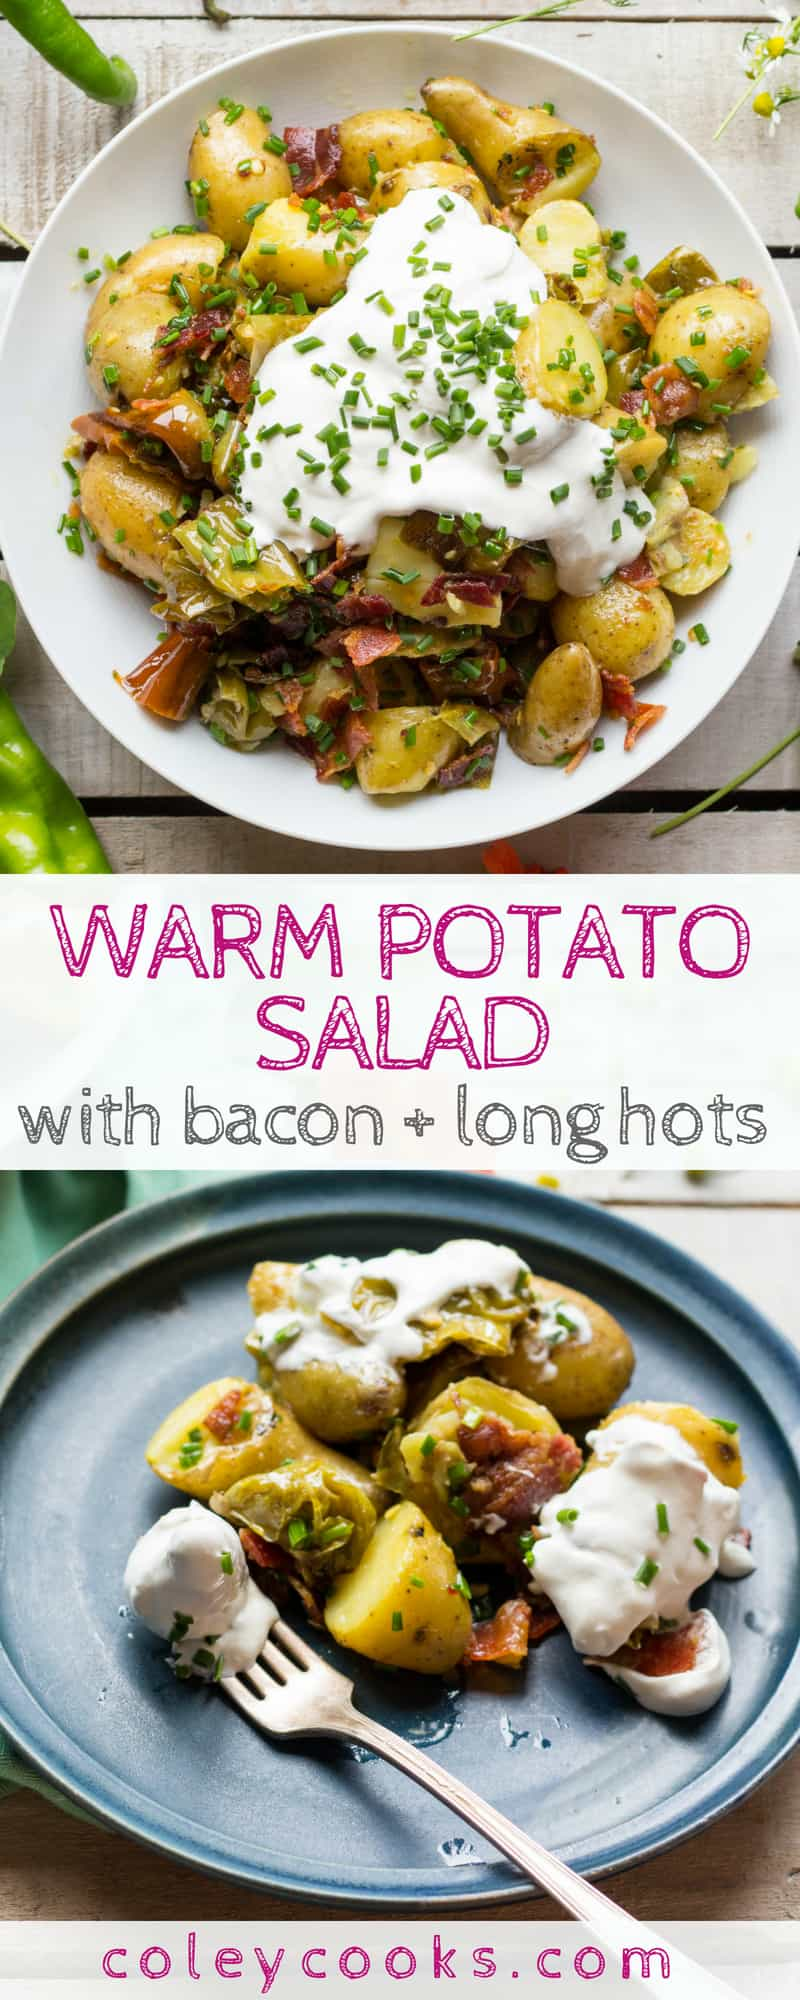 WARM POTATO SALAD with BACON + LONG HOTS | My favorite potato salad recipe has no mayonnaise and tons of flavor from crispy bacon, spicy long hots, sour cream and chives. #potatoes #salad #side #reicpe #summer | ColeyCooks.com